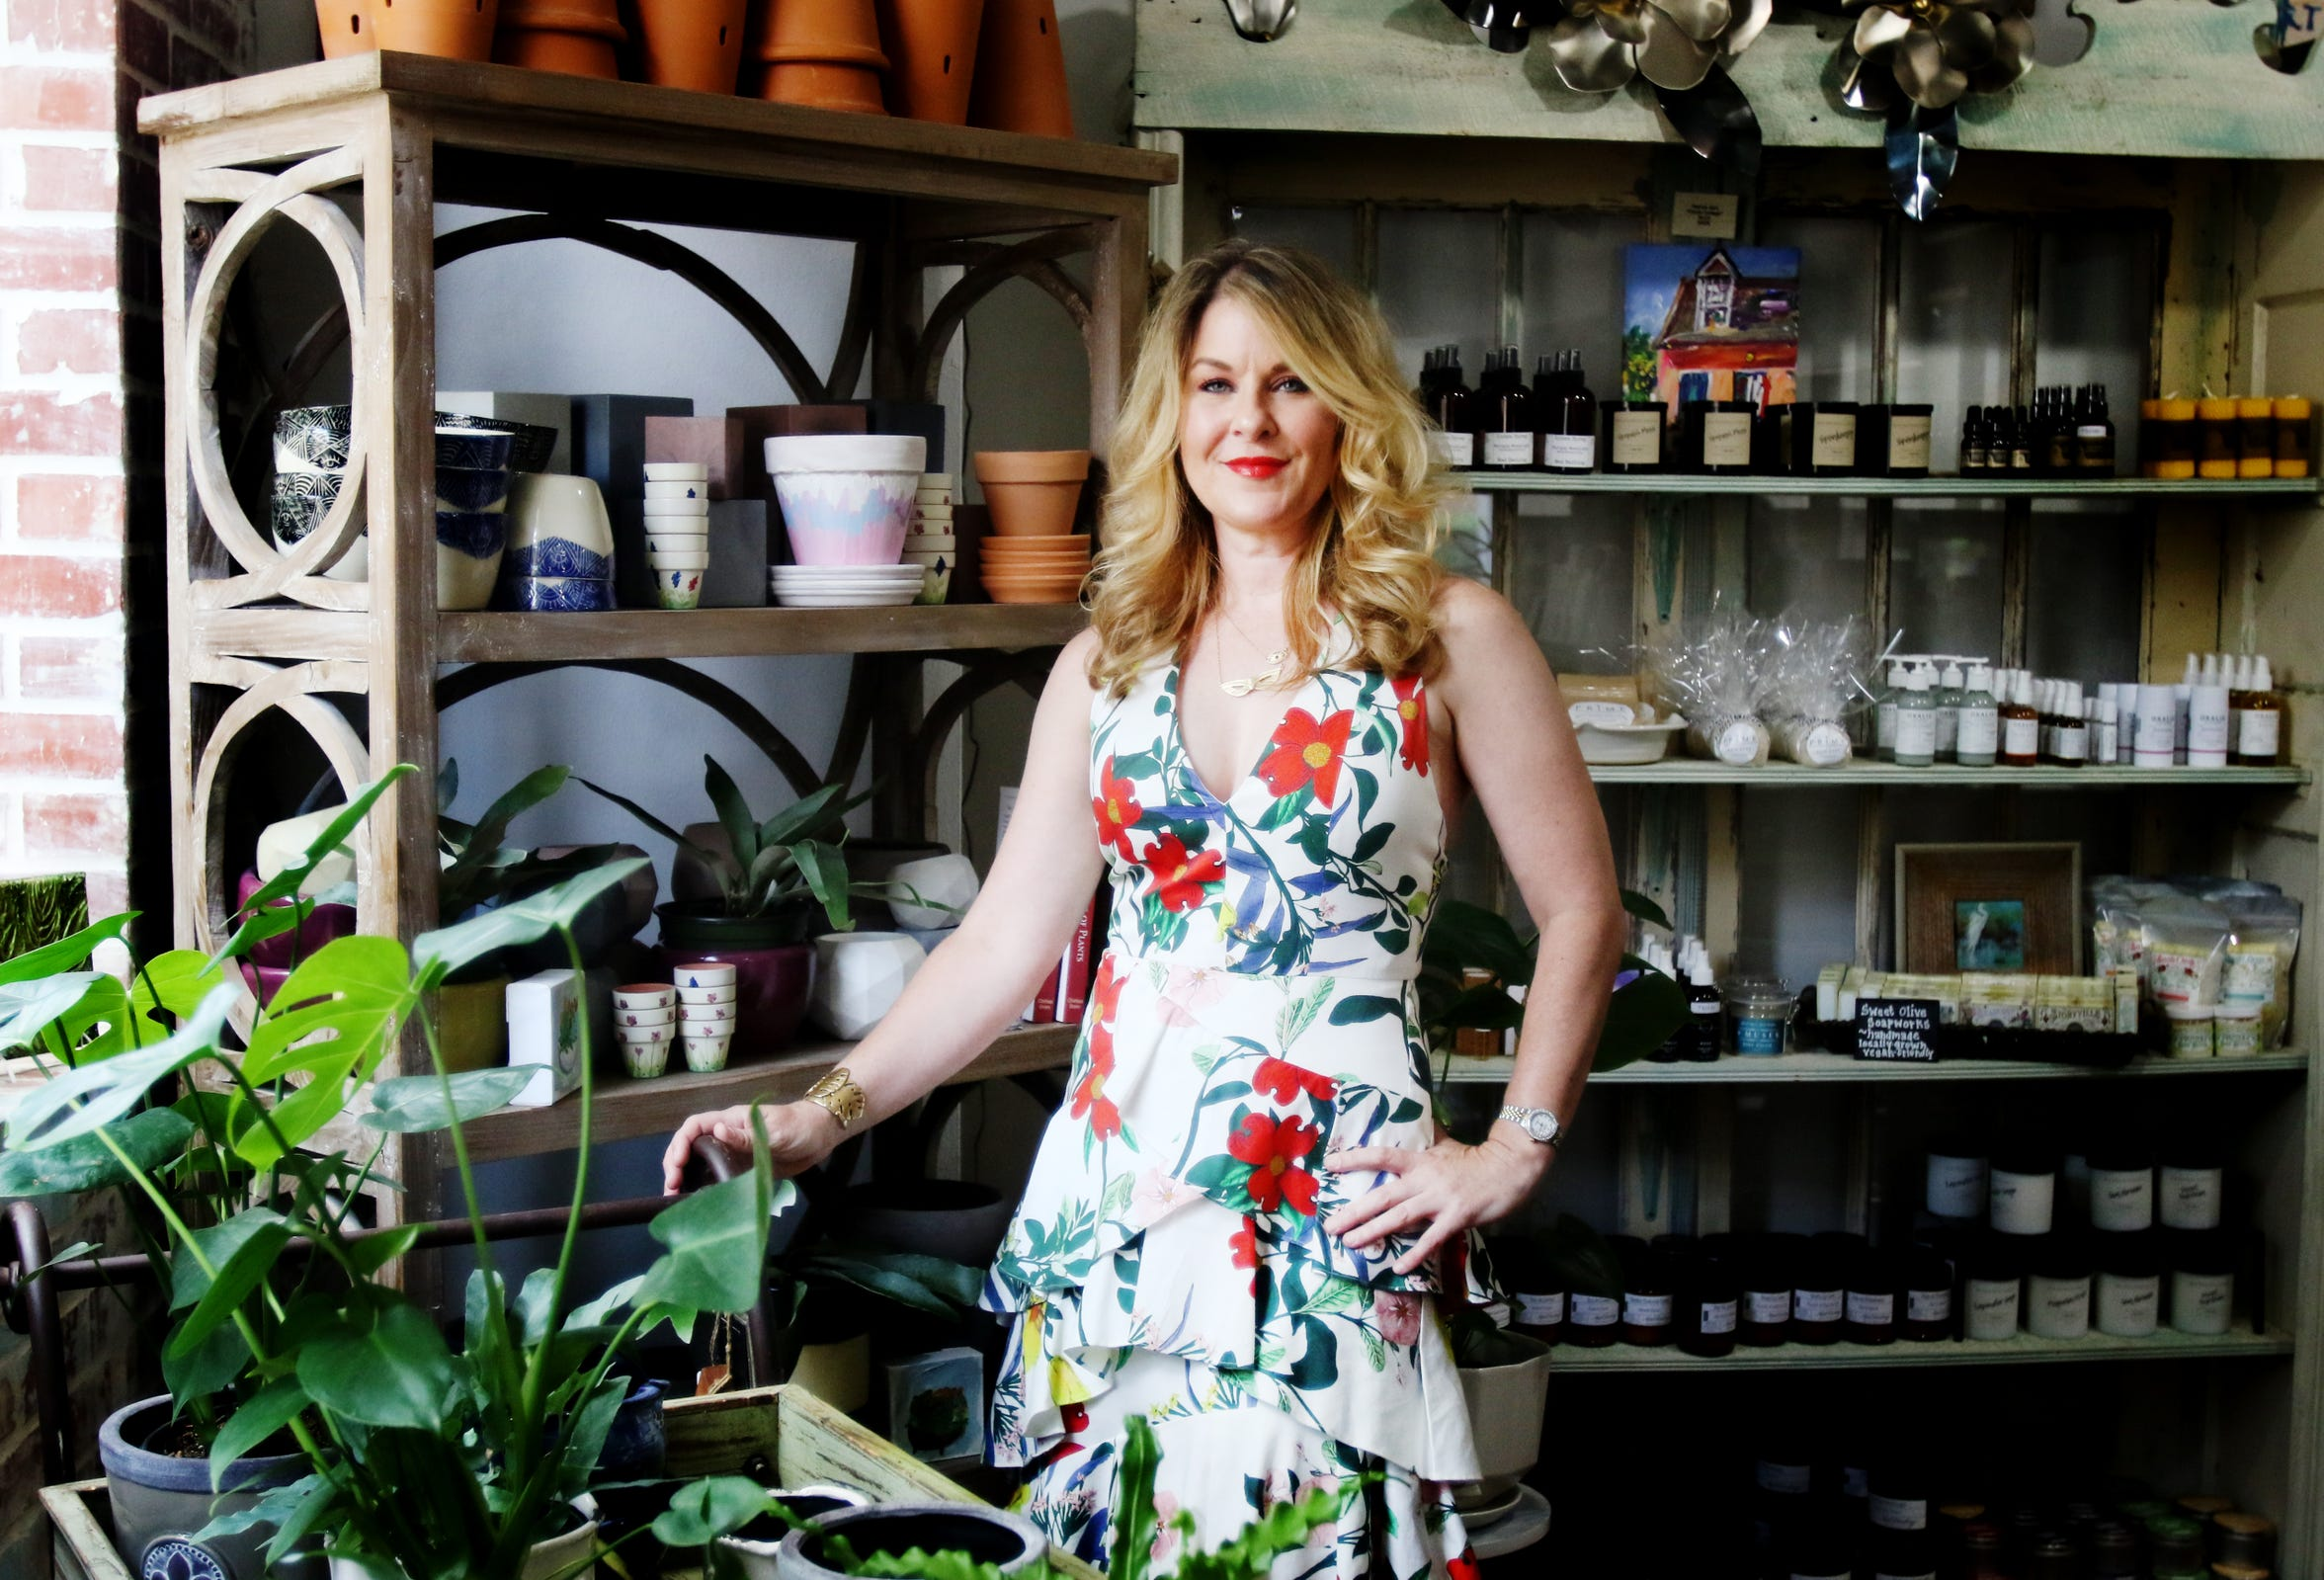 Cassie Stone is the owner of 318Art&Garden an artisanal gifts and art gallery focusing on Louisiana art.